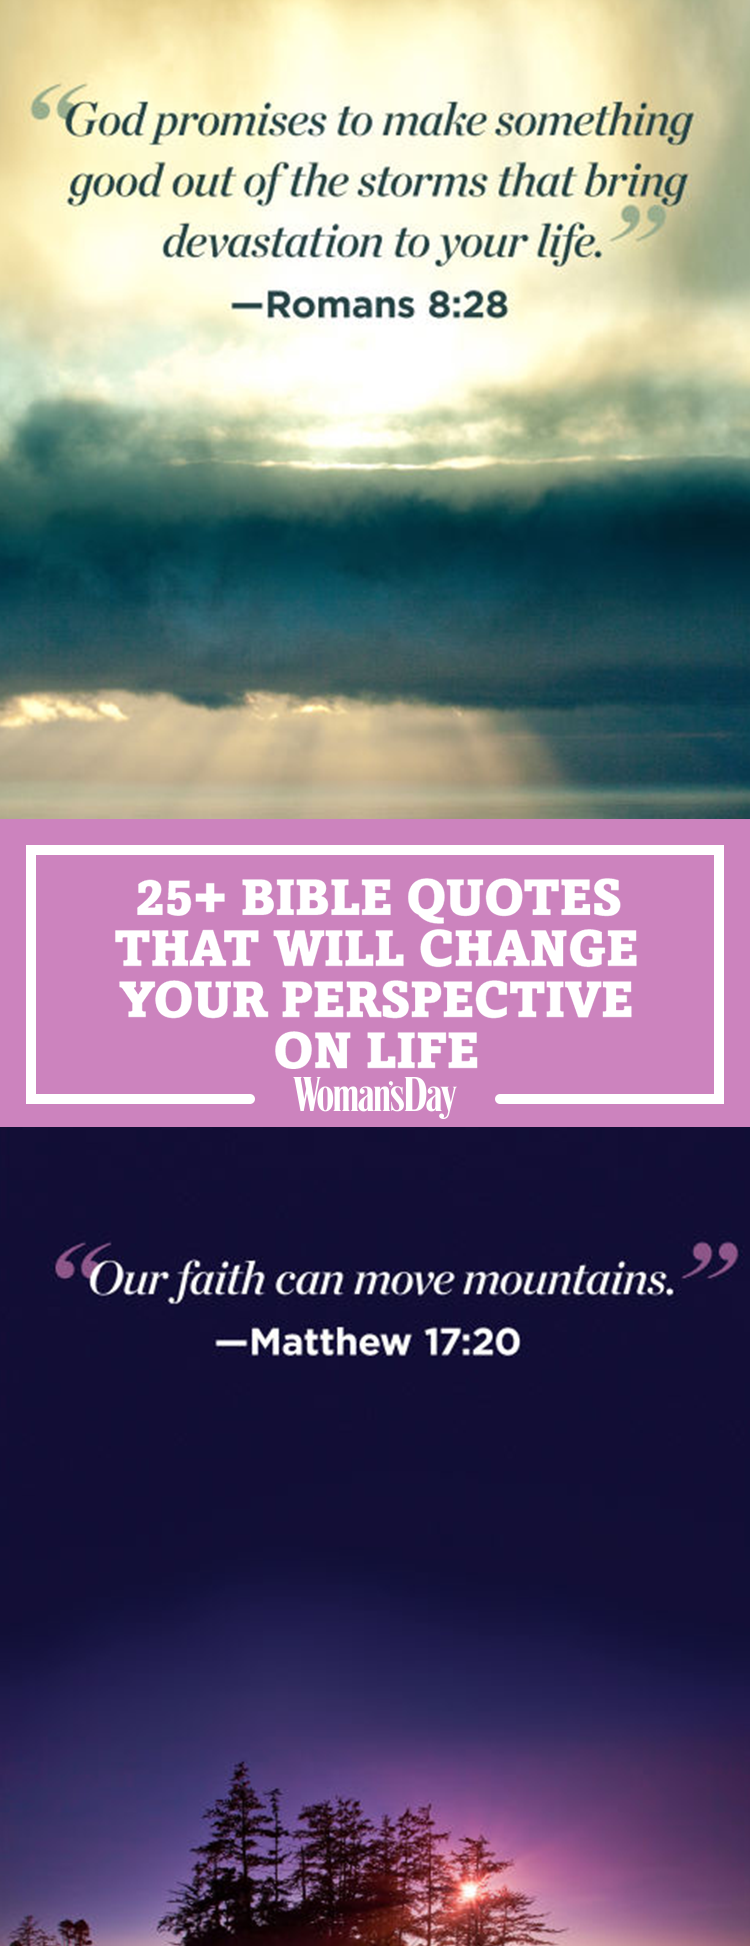 Life And Death Quotes From The Bible 26 Inspirational Bible Quotes That Will Change Your Perspective On